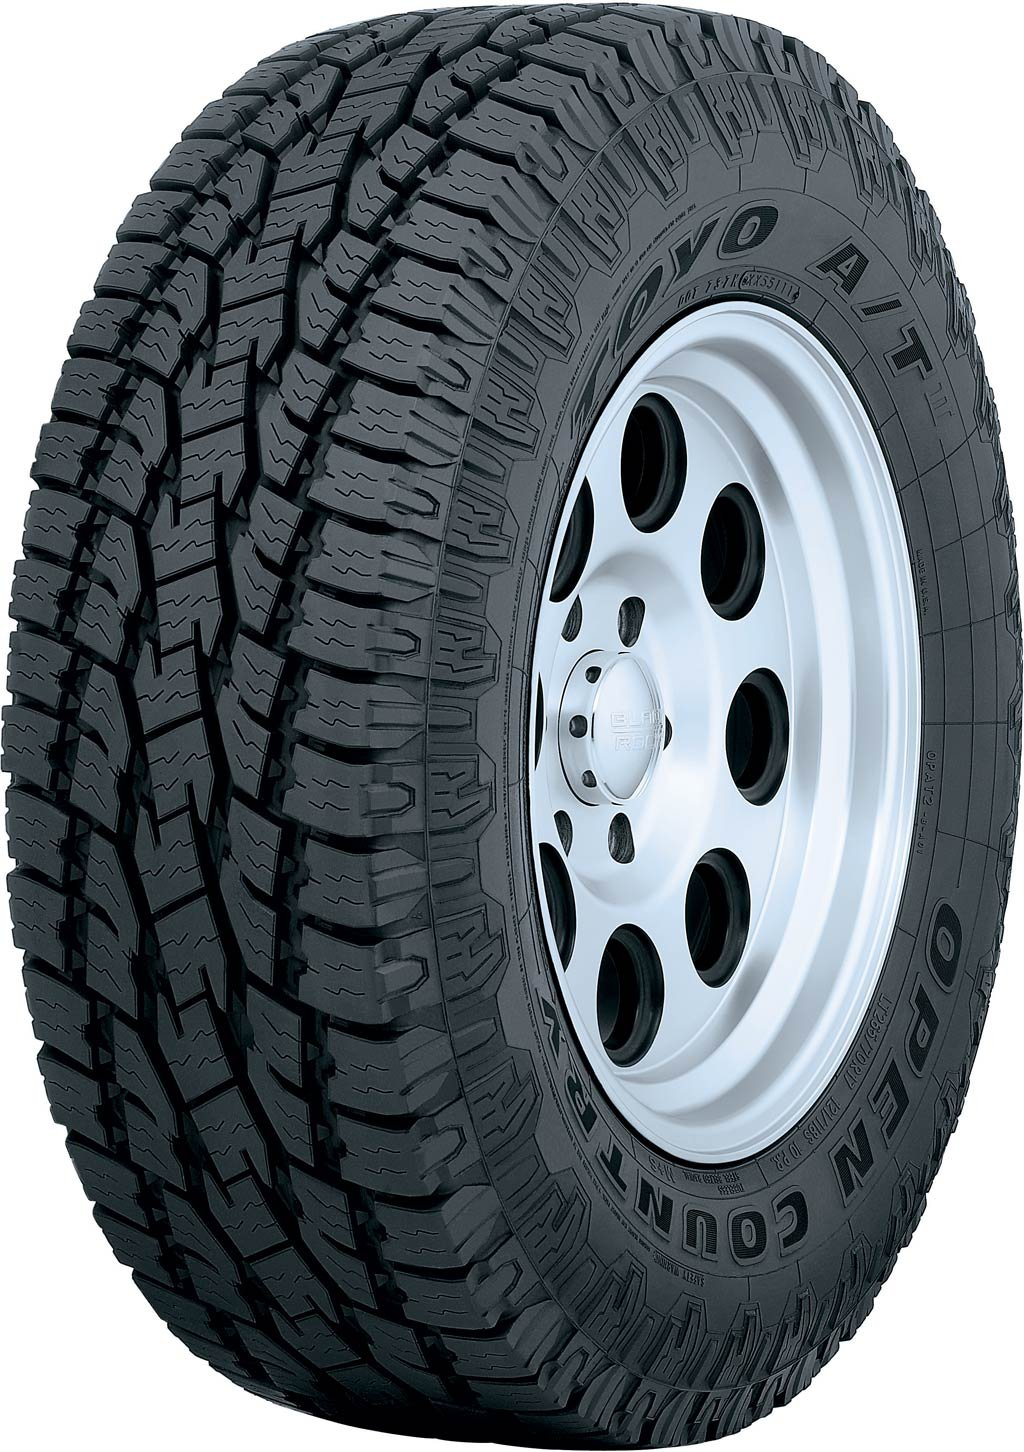 best snow tires for suvs truck snow tires autos post. Black Bedroom Furniture Sets. Home Design Ideas